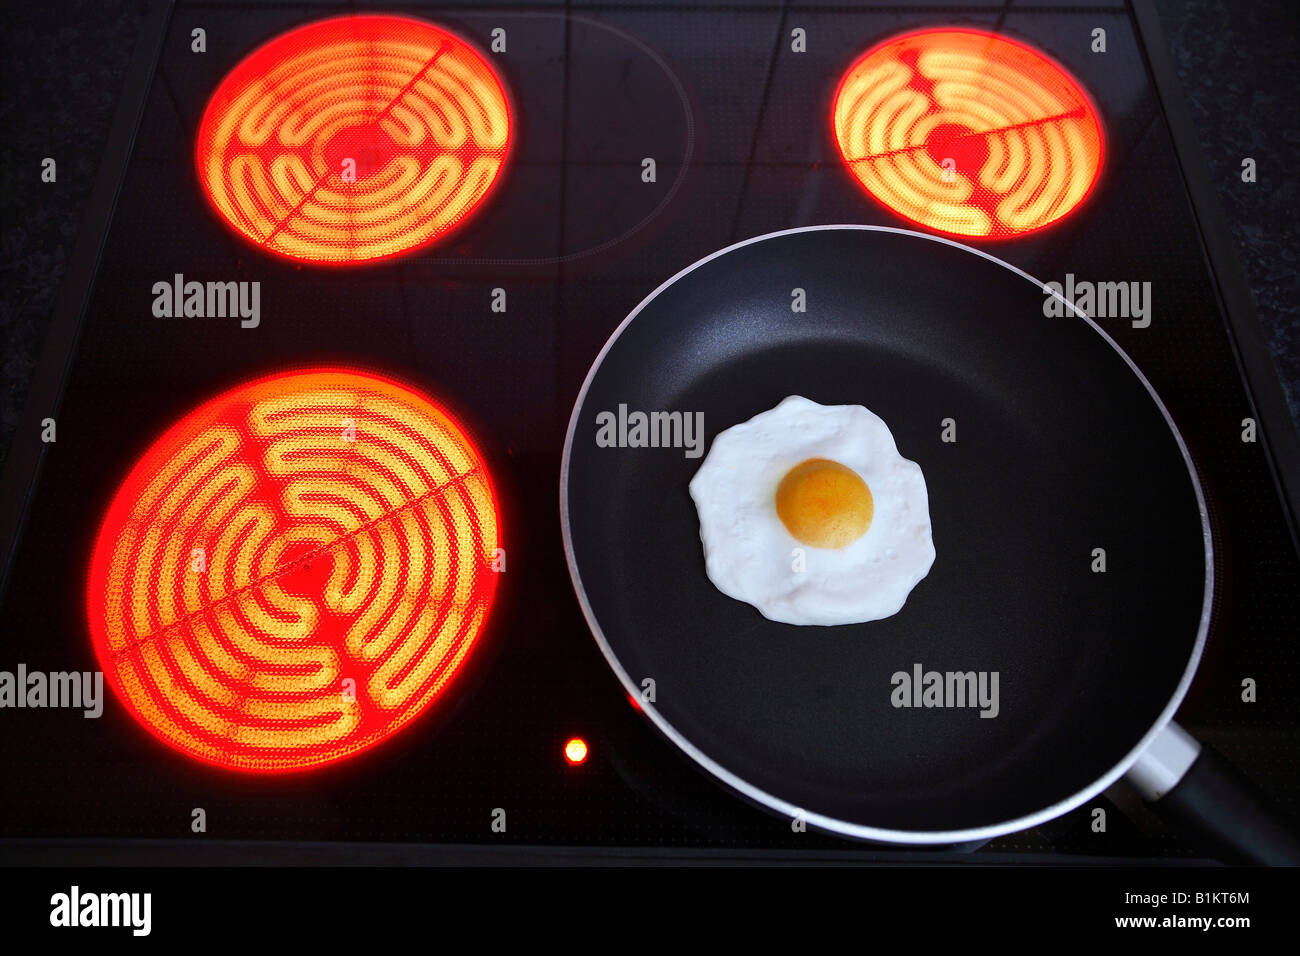 Burning hotplates of an induction cooker and a pan with fried egg - Stock Image